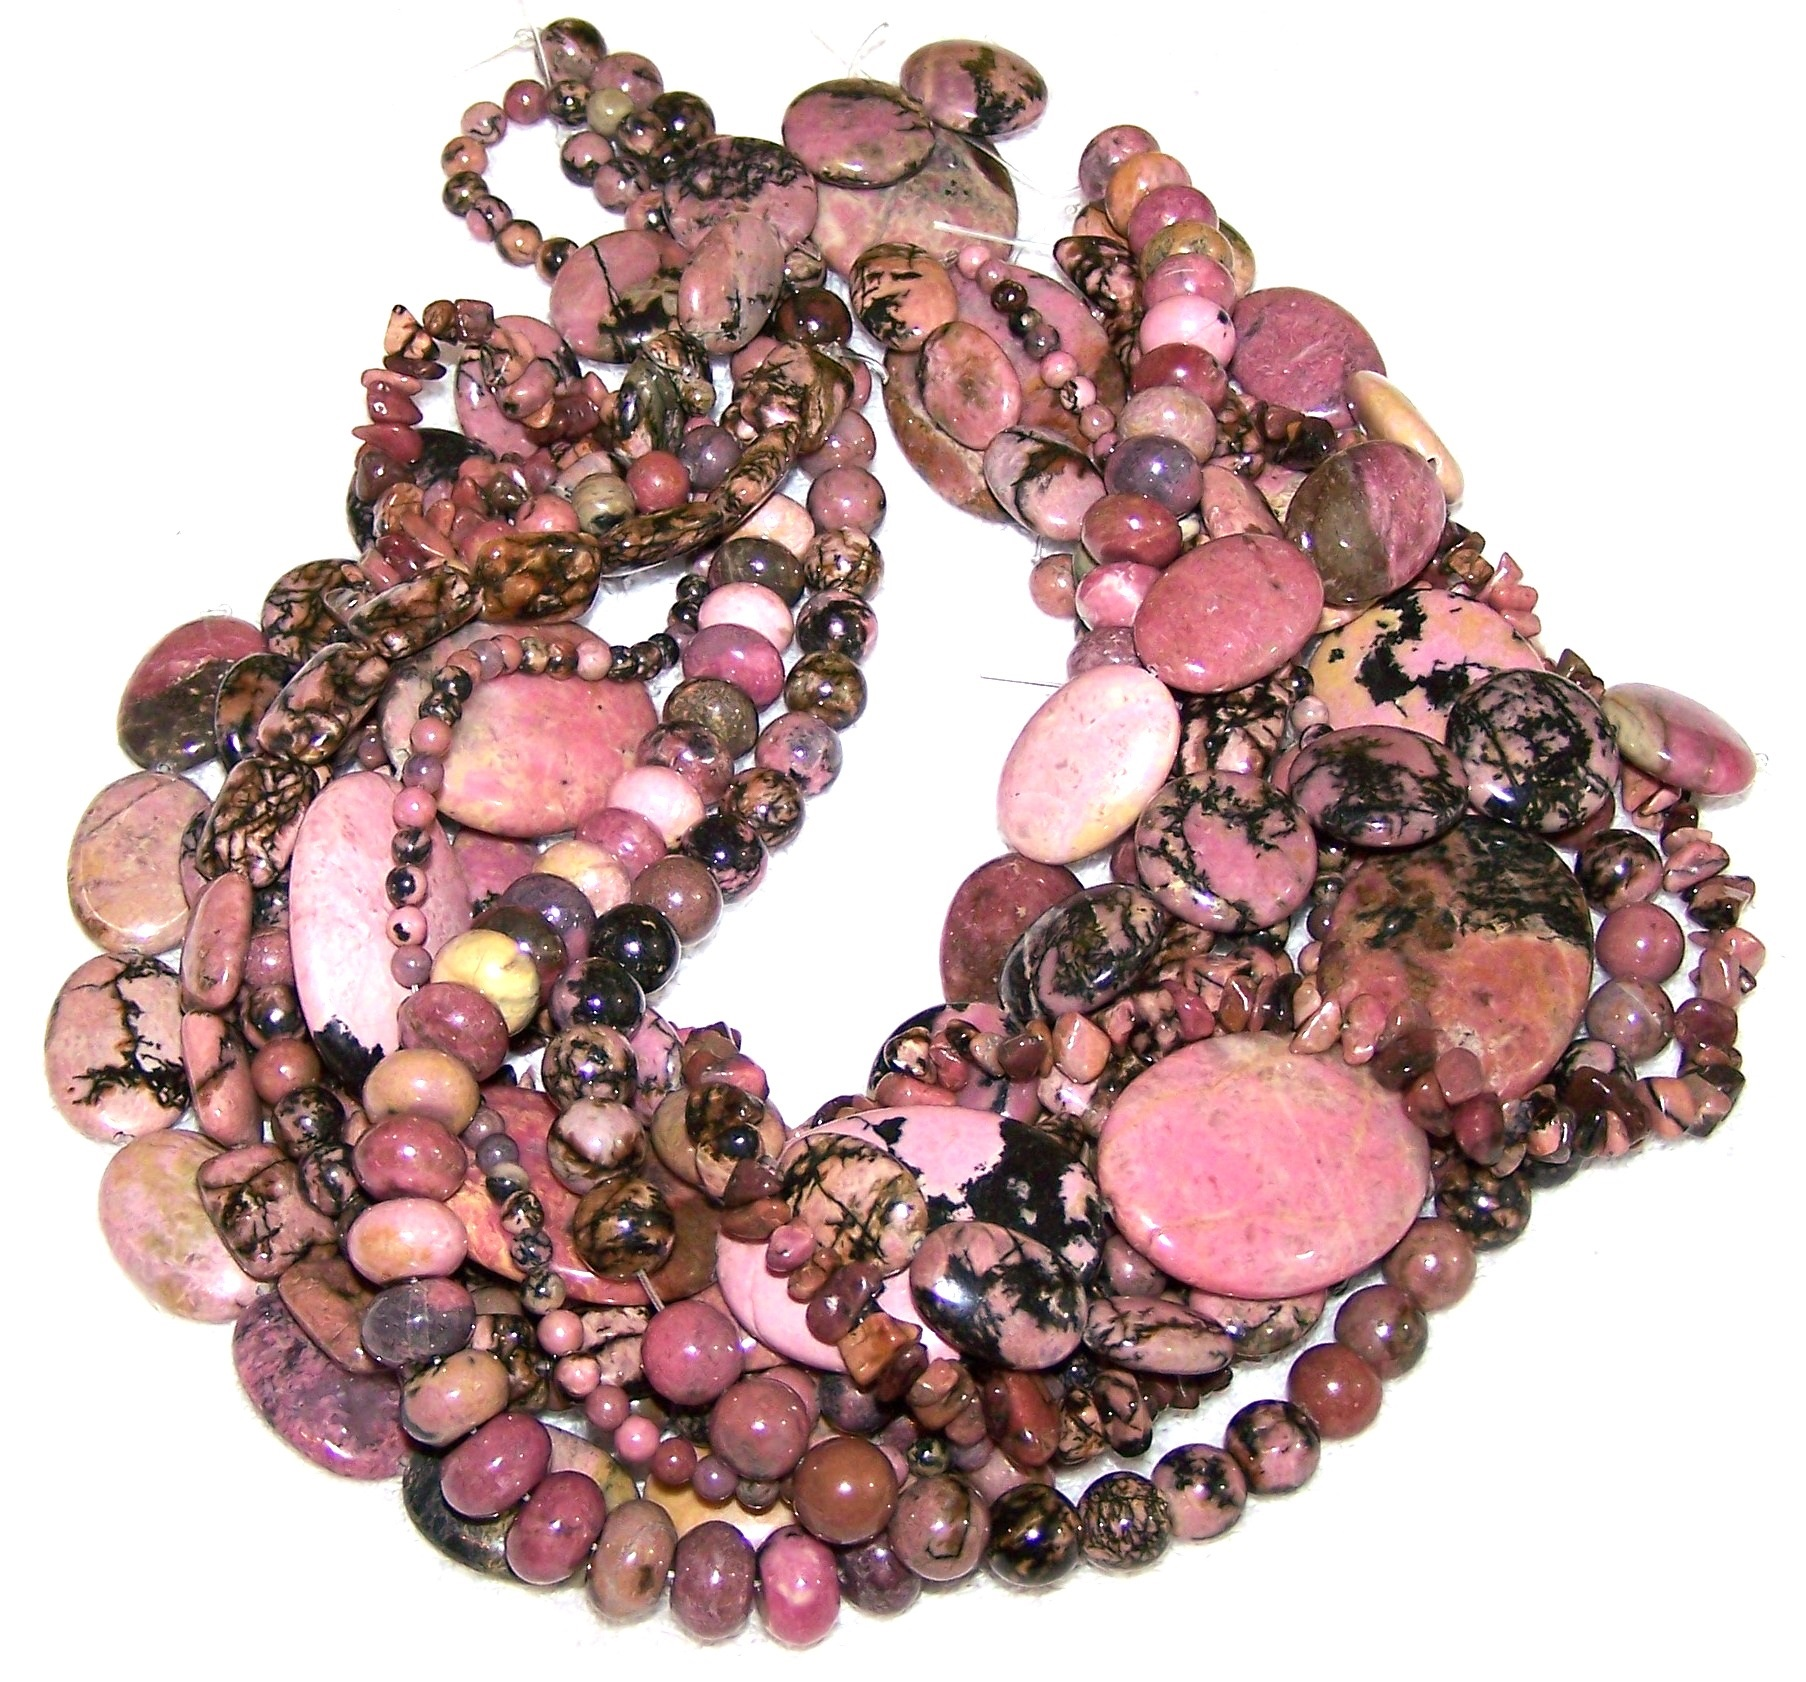 Rhodonite Semiprecious Gemstone Bead Assortment